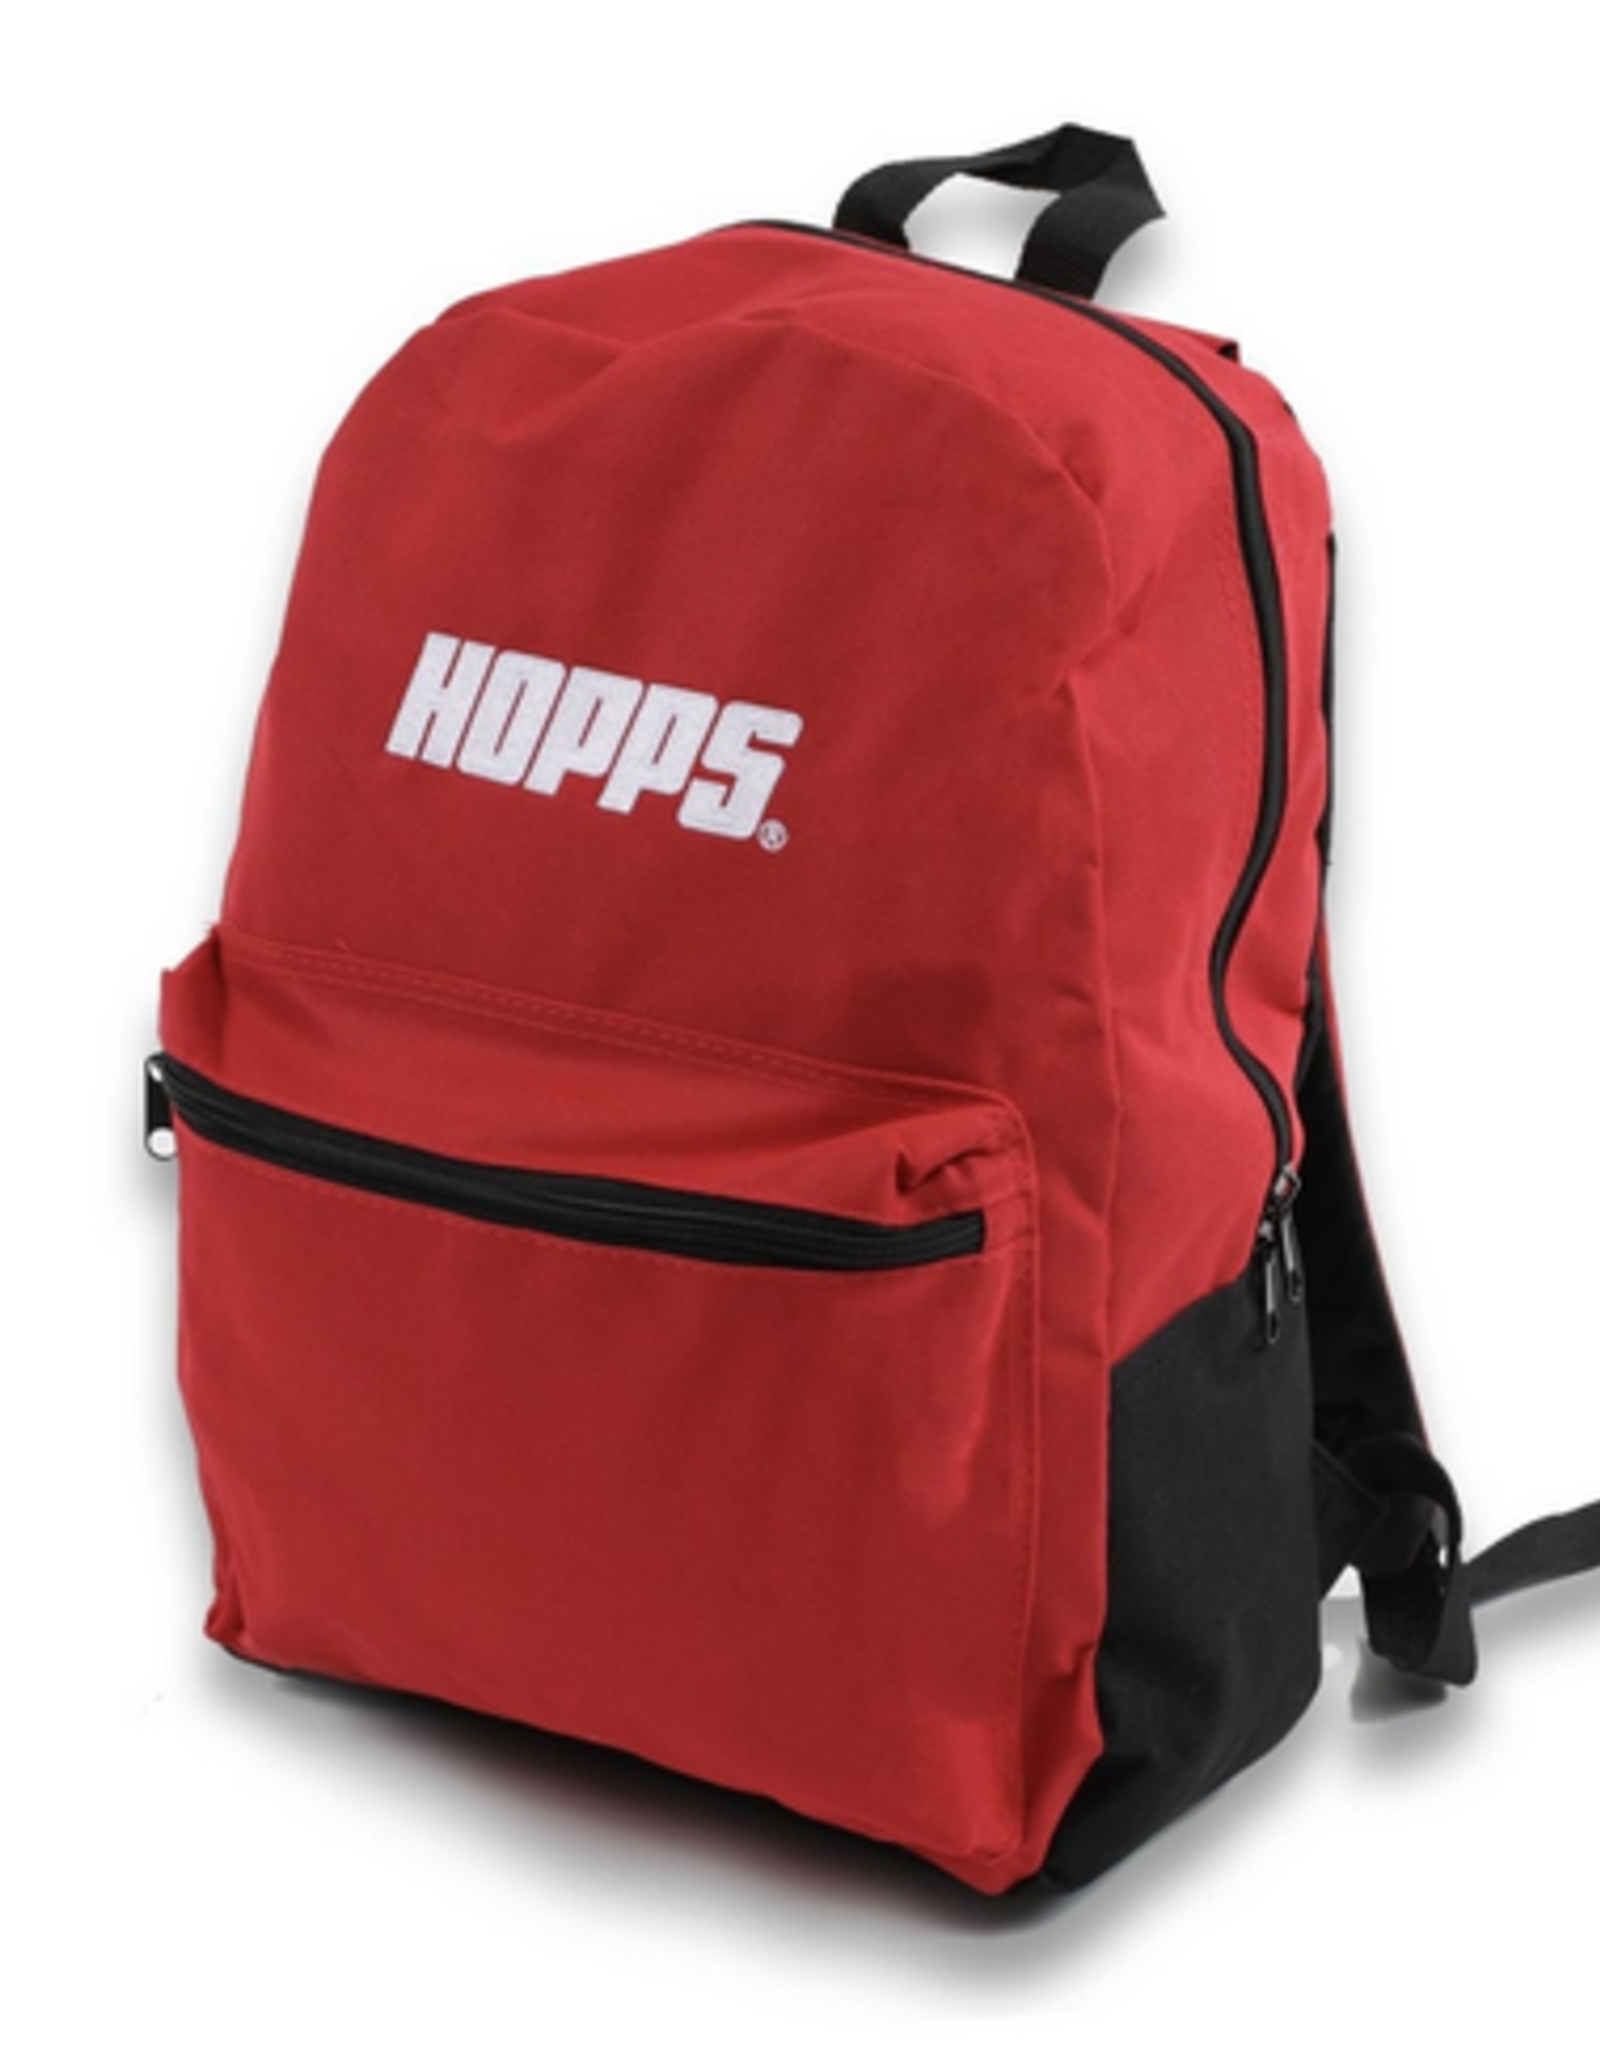 HOPPS HOPPS BIG HOPPS BACKPACK RED